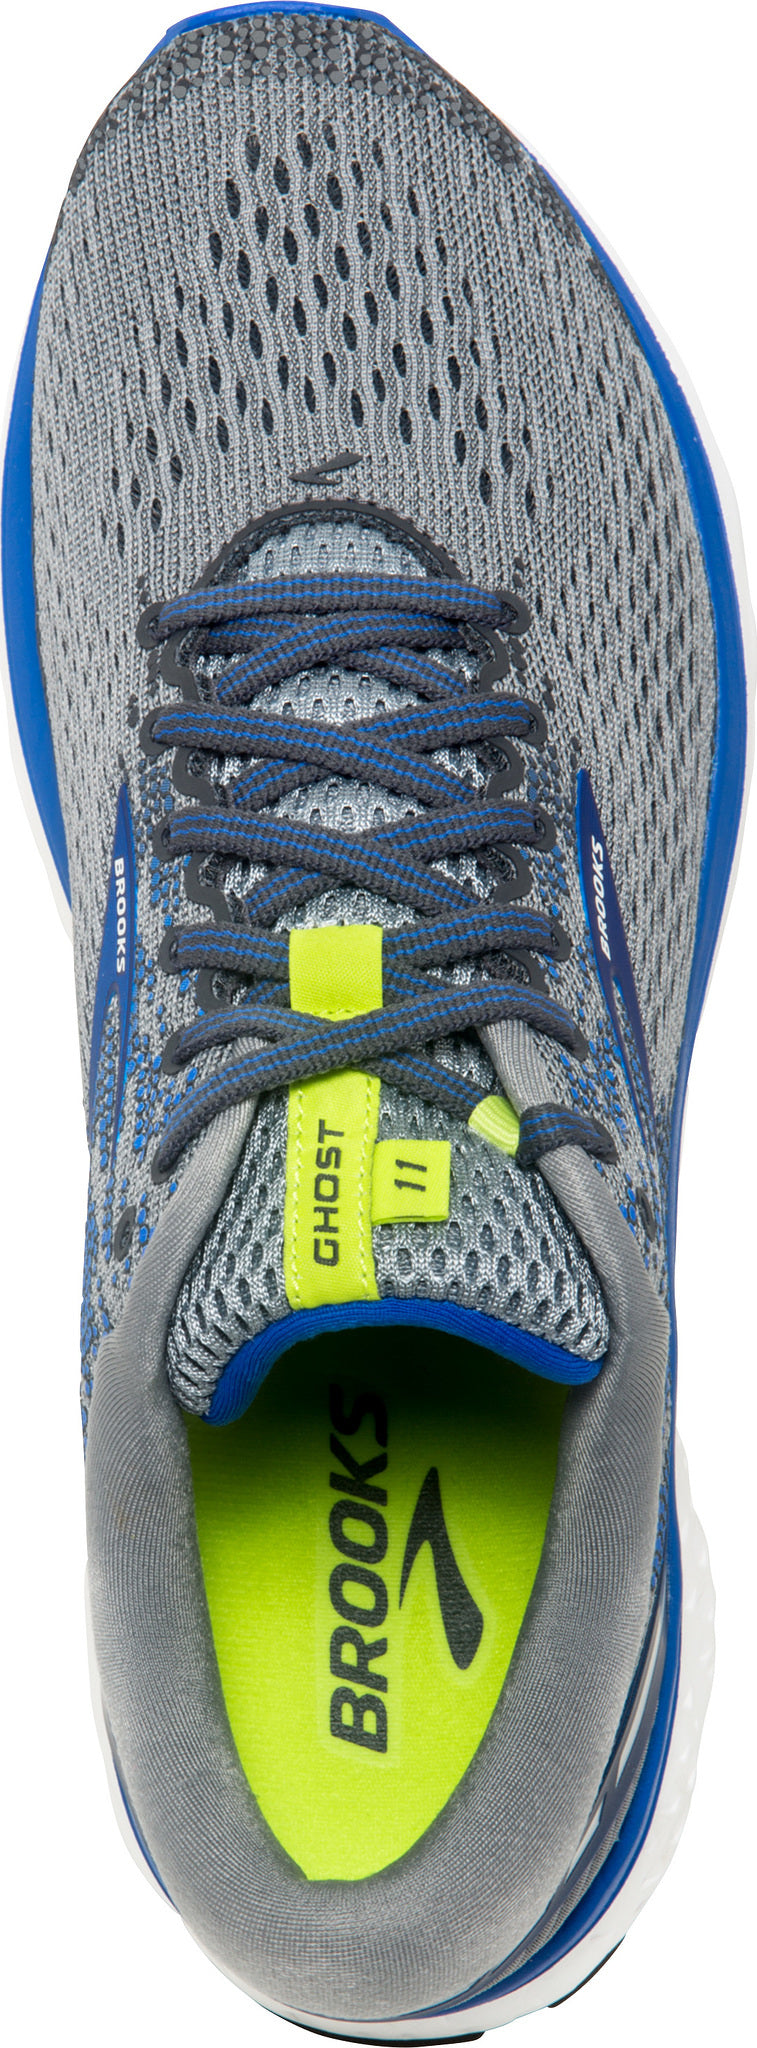 eb08406afc4 ... Ghost 11 Running Shoes - Men s thumb ...